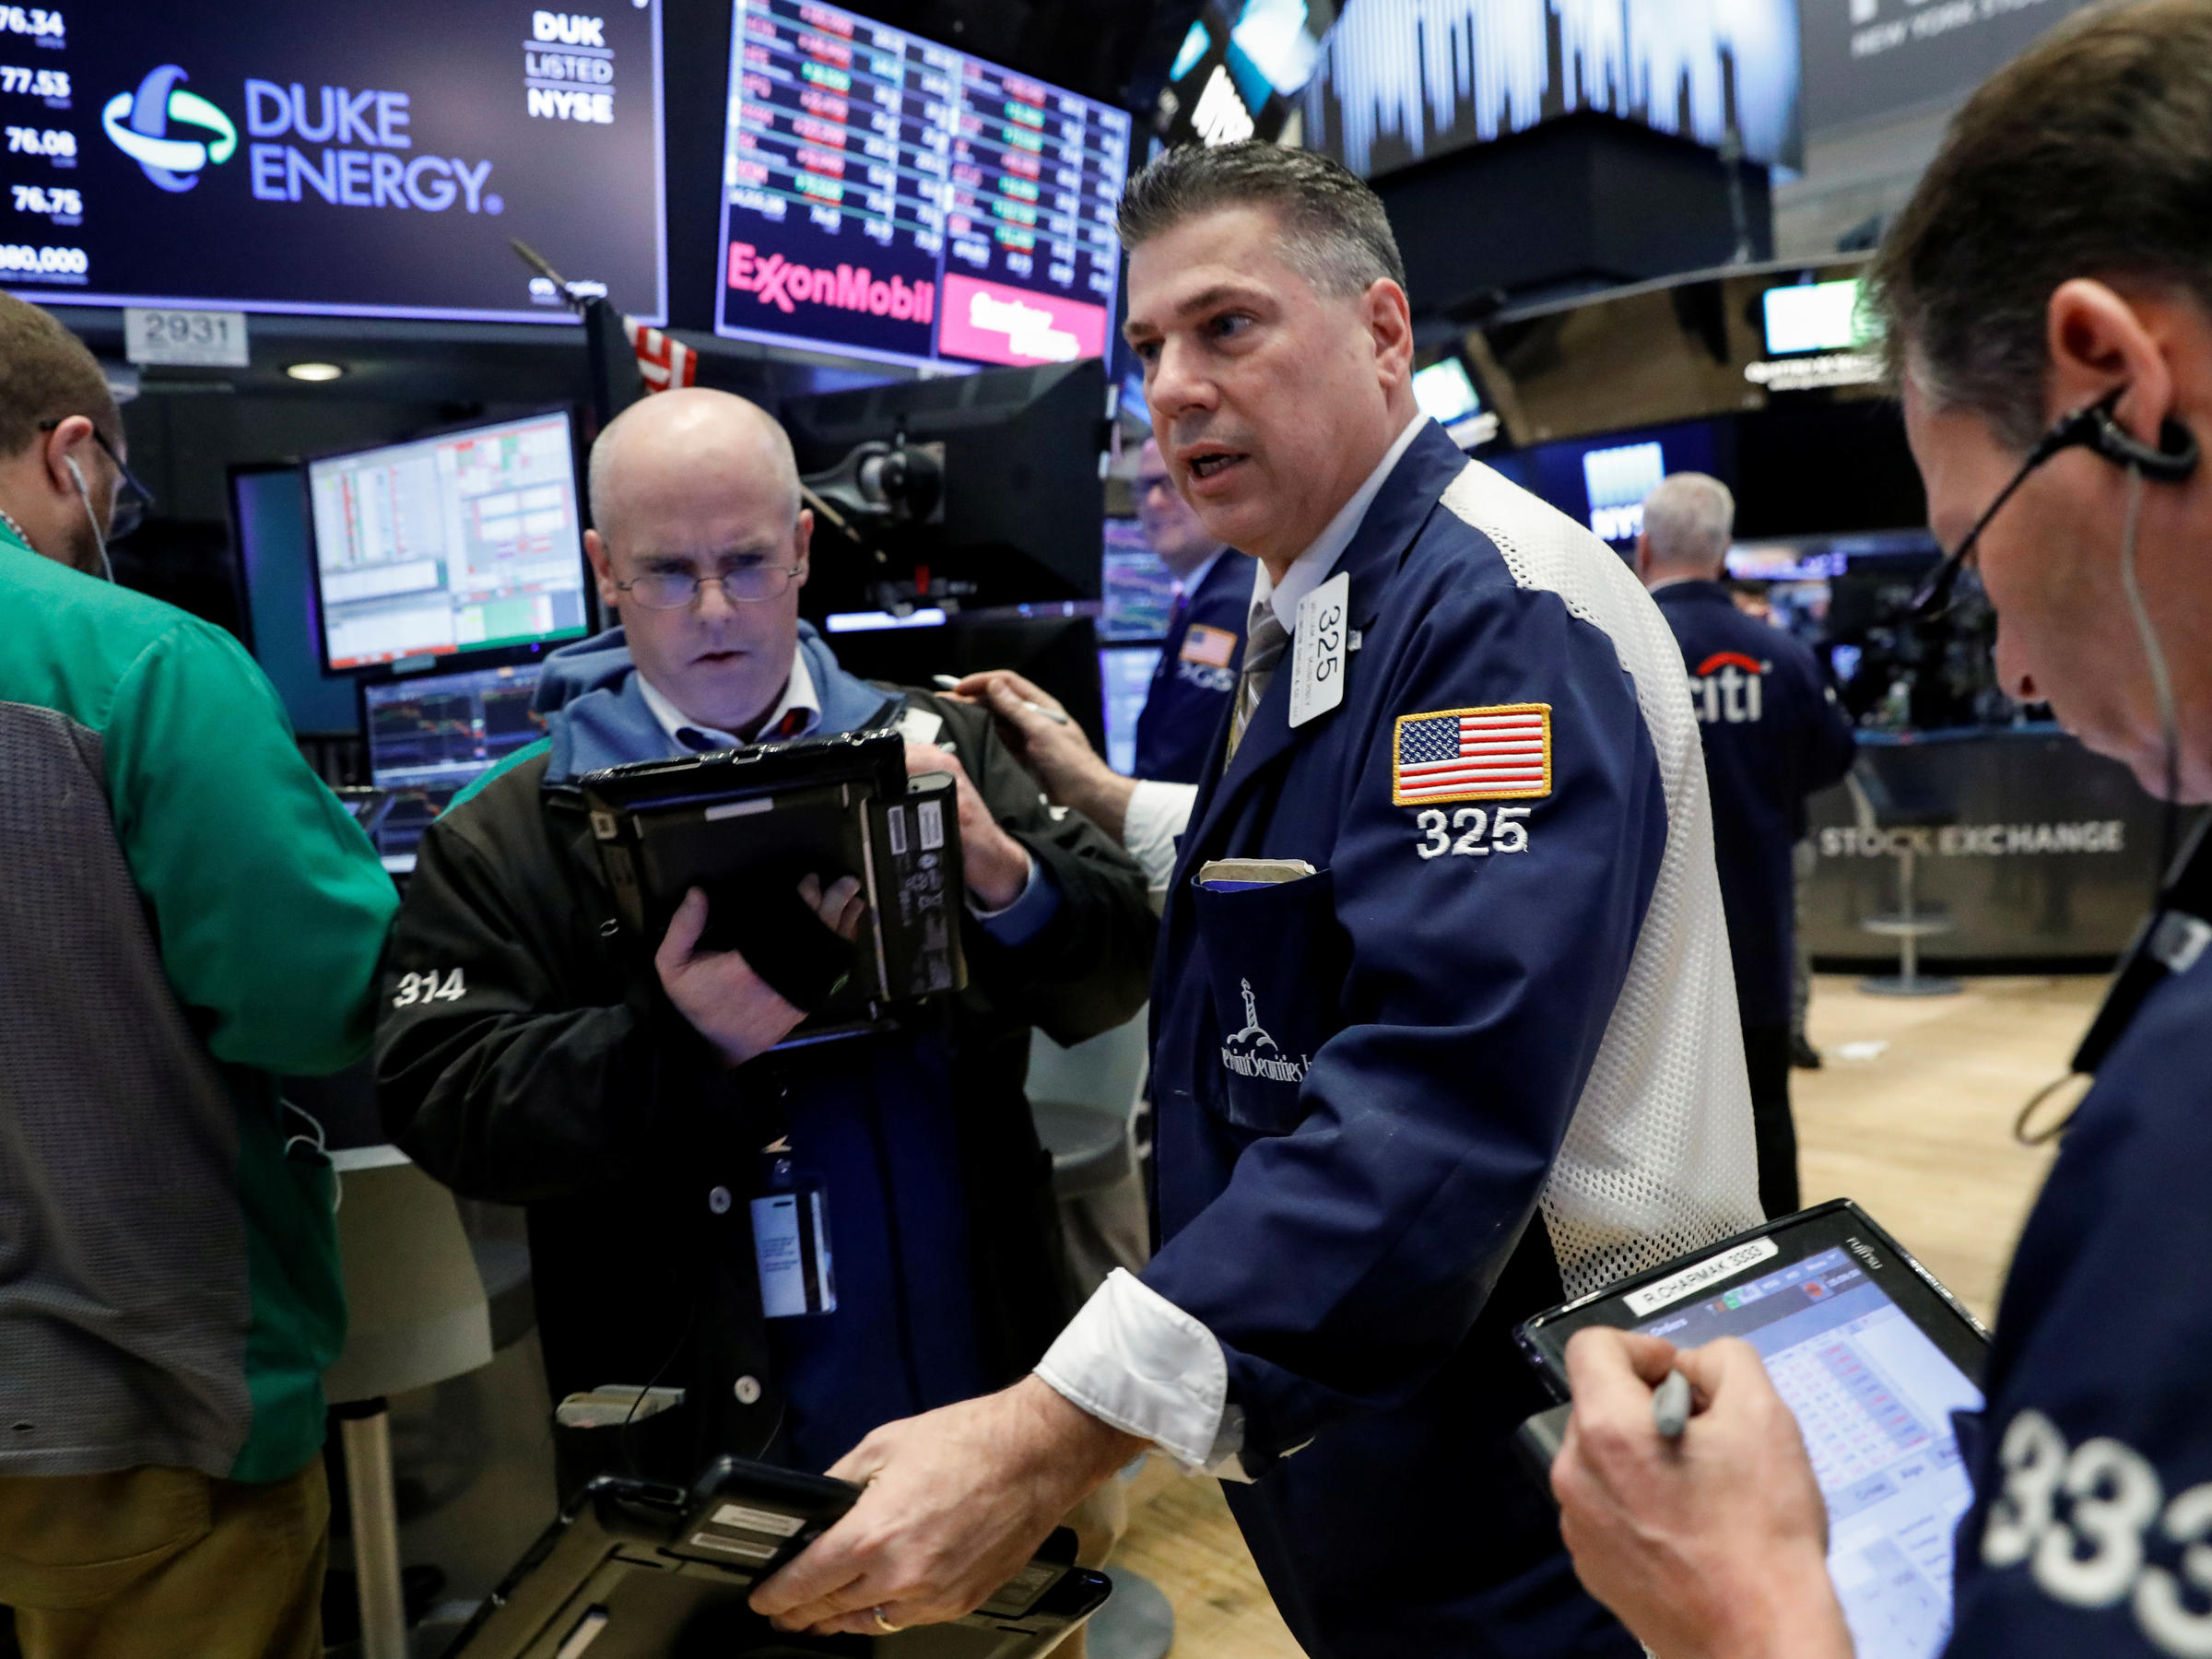 Dow tumbles more than 700 points as trade war fears intensify